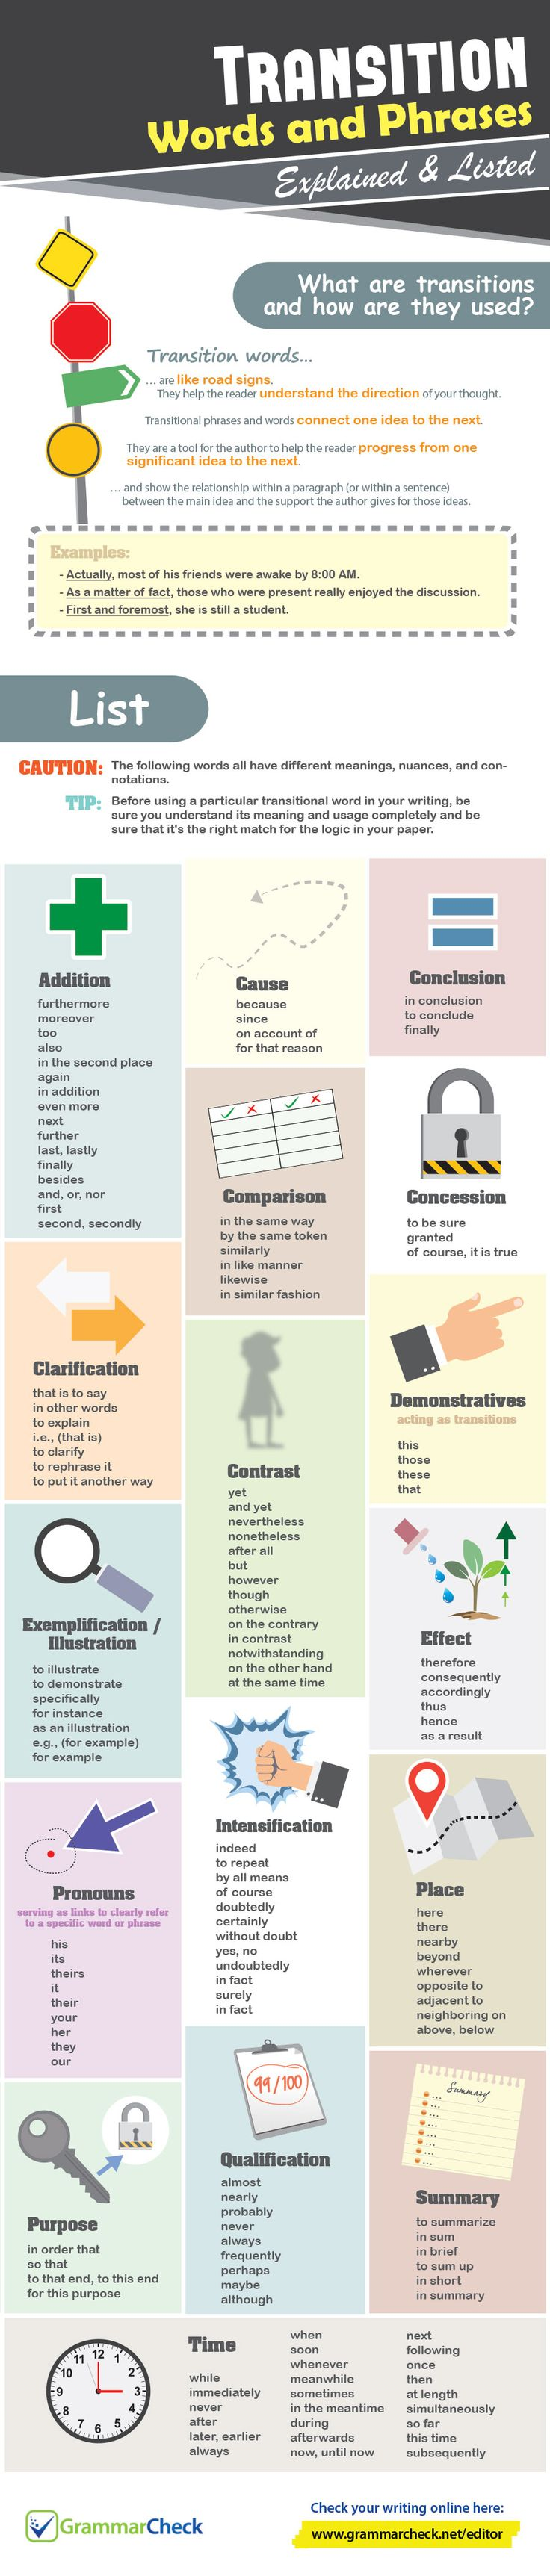 best ideas about grammar check grammar english transition words and phrases explained listed infographic